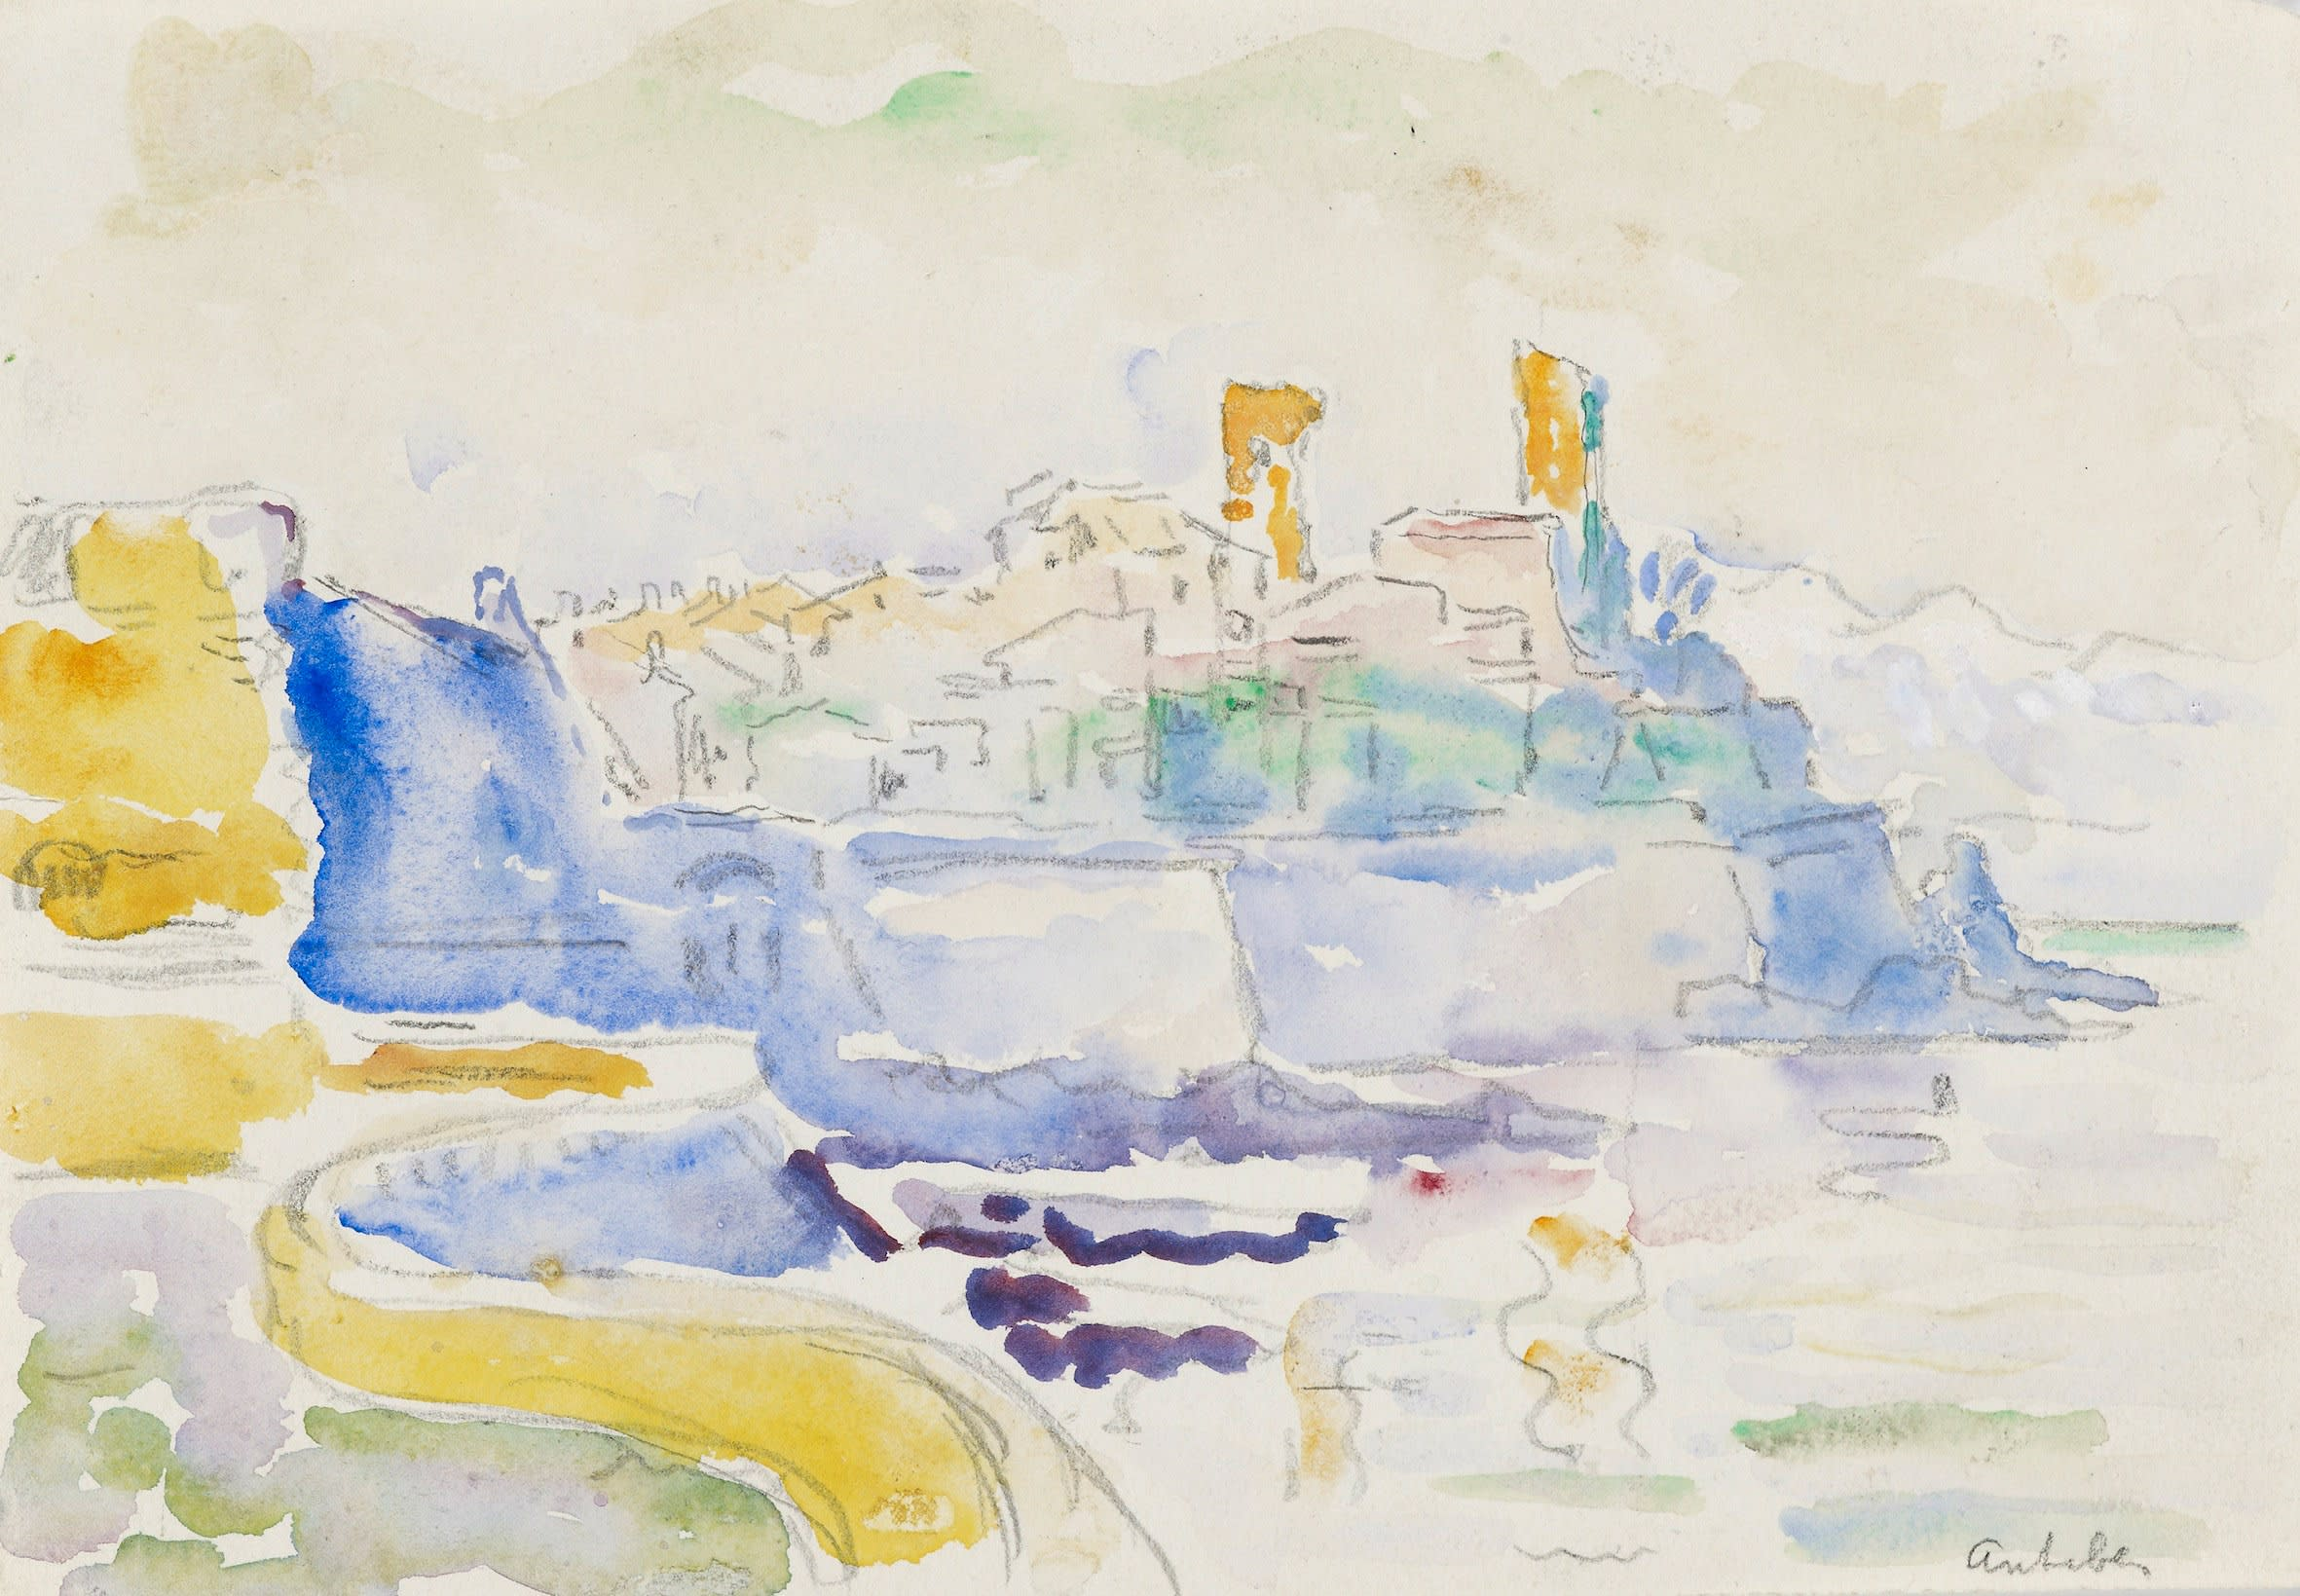 """<span class=""""link fancybox-details-link""""><a href=""""/artists/75-paul-signac/works/9422-paul-signac-vue-d-antibes-1918-1919/"""">View Detail Page</a></span><div class=""""artist""""><span class=""""artist""""><strong>Paul Signac</strong></span></div><div class=""""title""""><em>Vue d'Antibes</em>, 1918-1919</div><div class=""""signed_and_dated"""">Located lower right 'antibes'</div><div class=""""medium"""">Watercolour and pencil on paper</div><div class=""""dimensions"""">17.5 x 24.4 cm<br /> 6 7/8 x 8 ¼ inches<br /> </div>"""